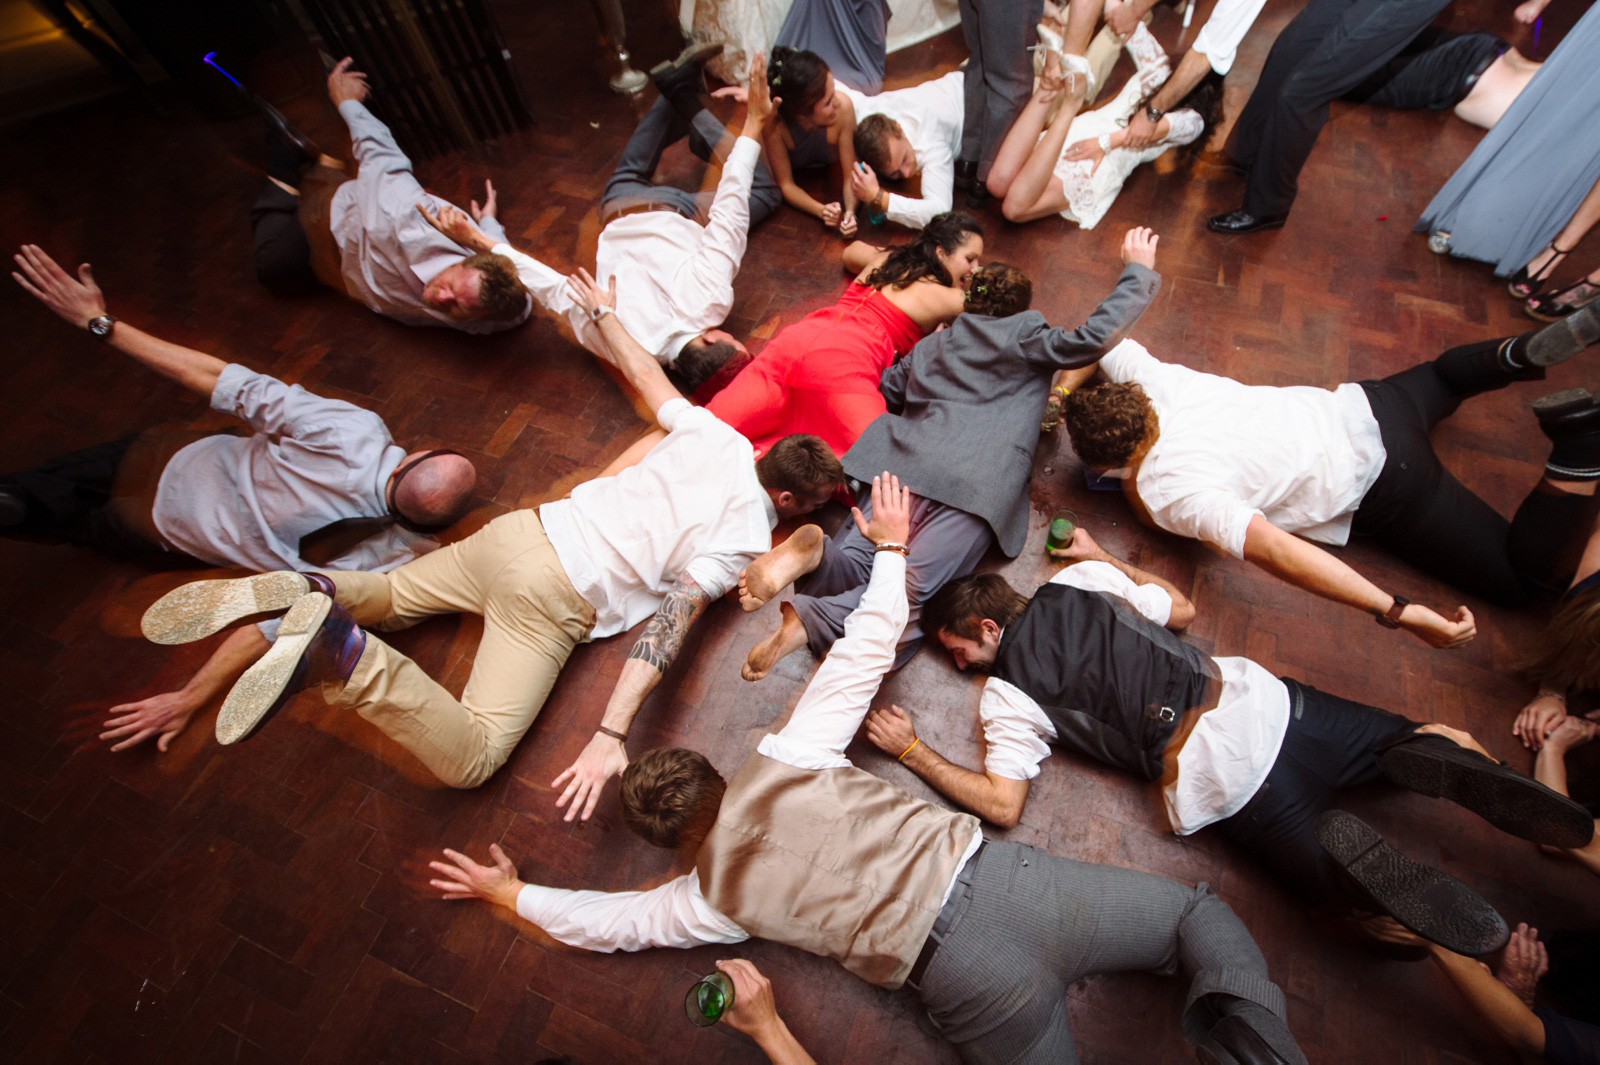 everyone diving on the floor at a wedding